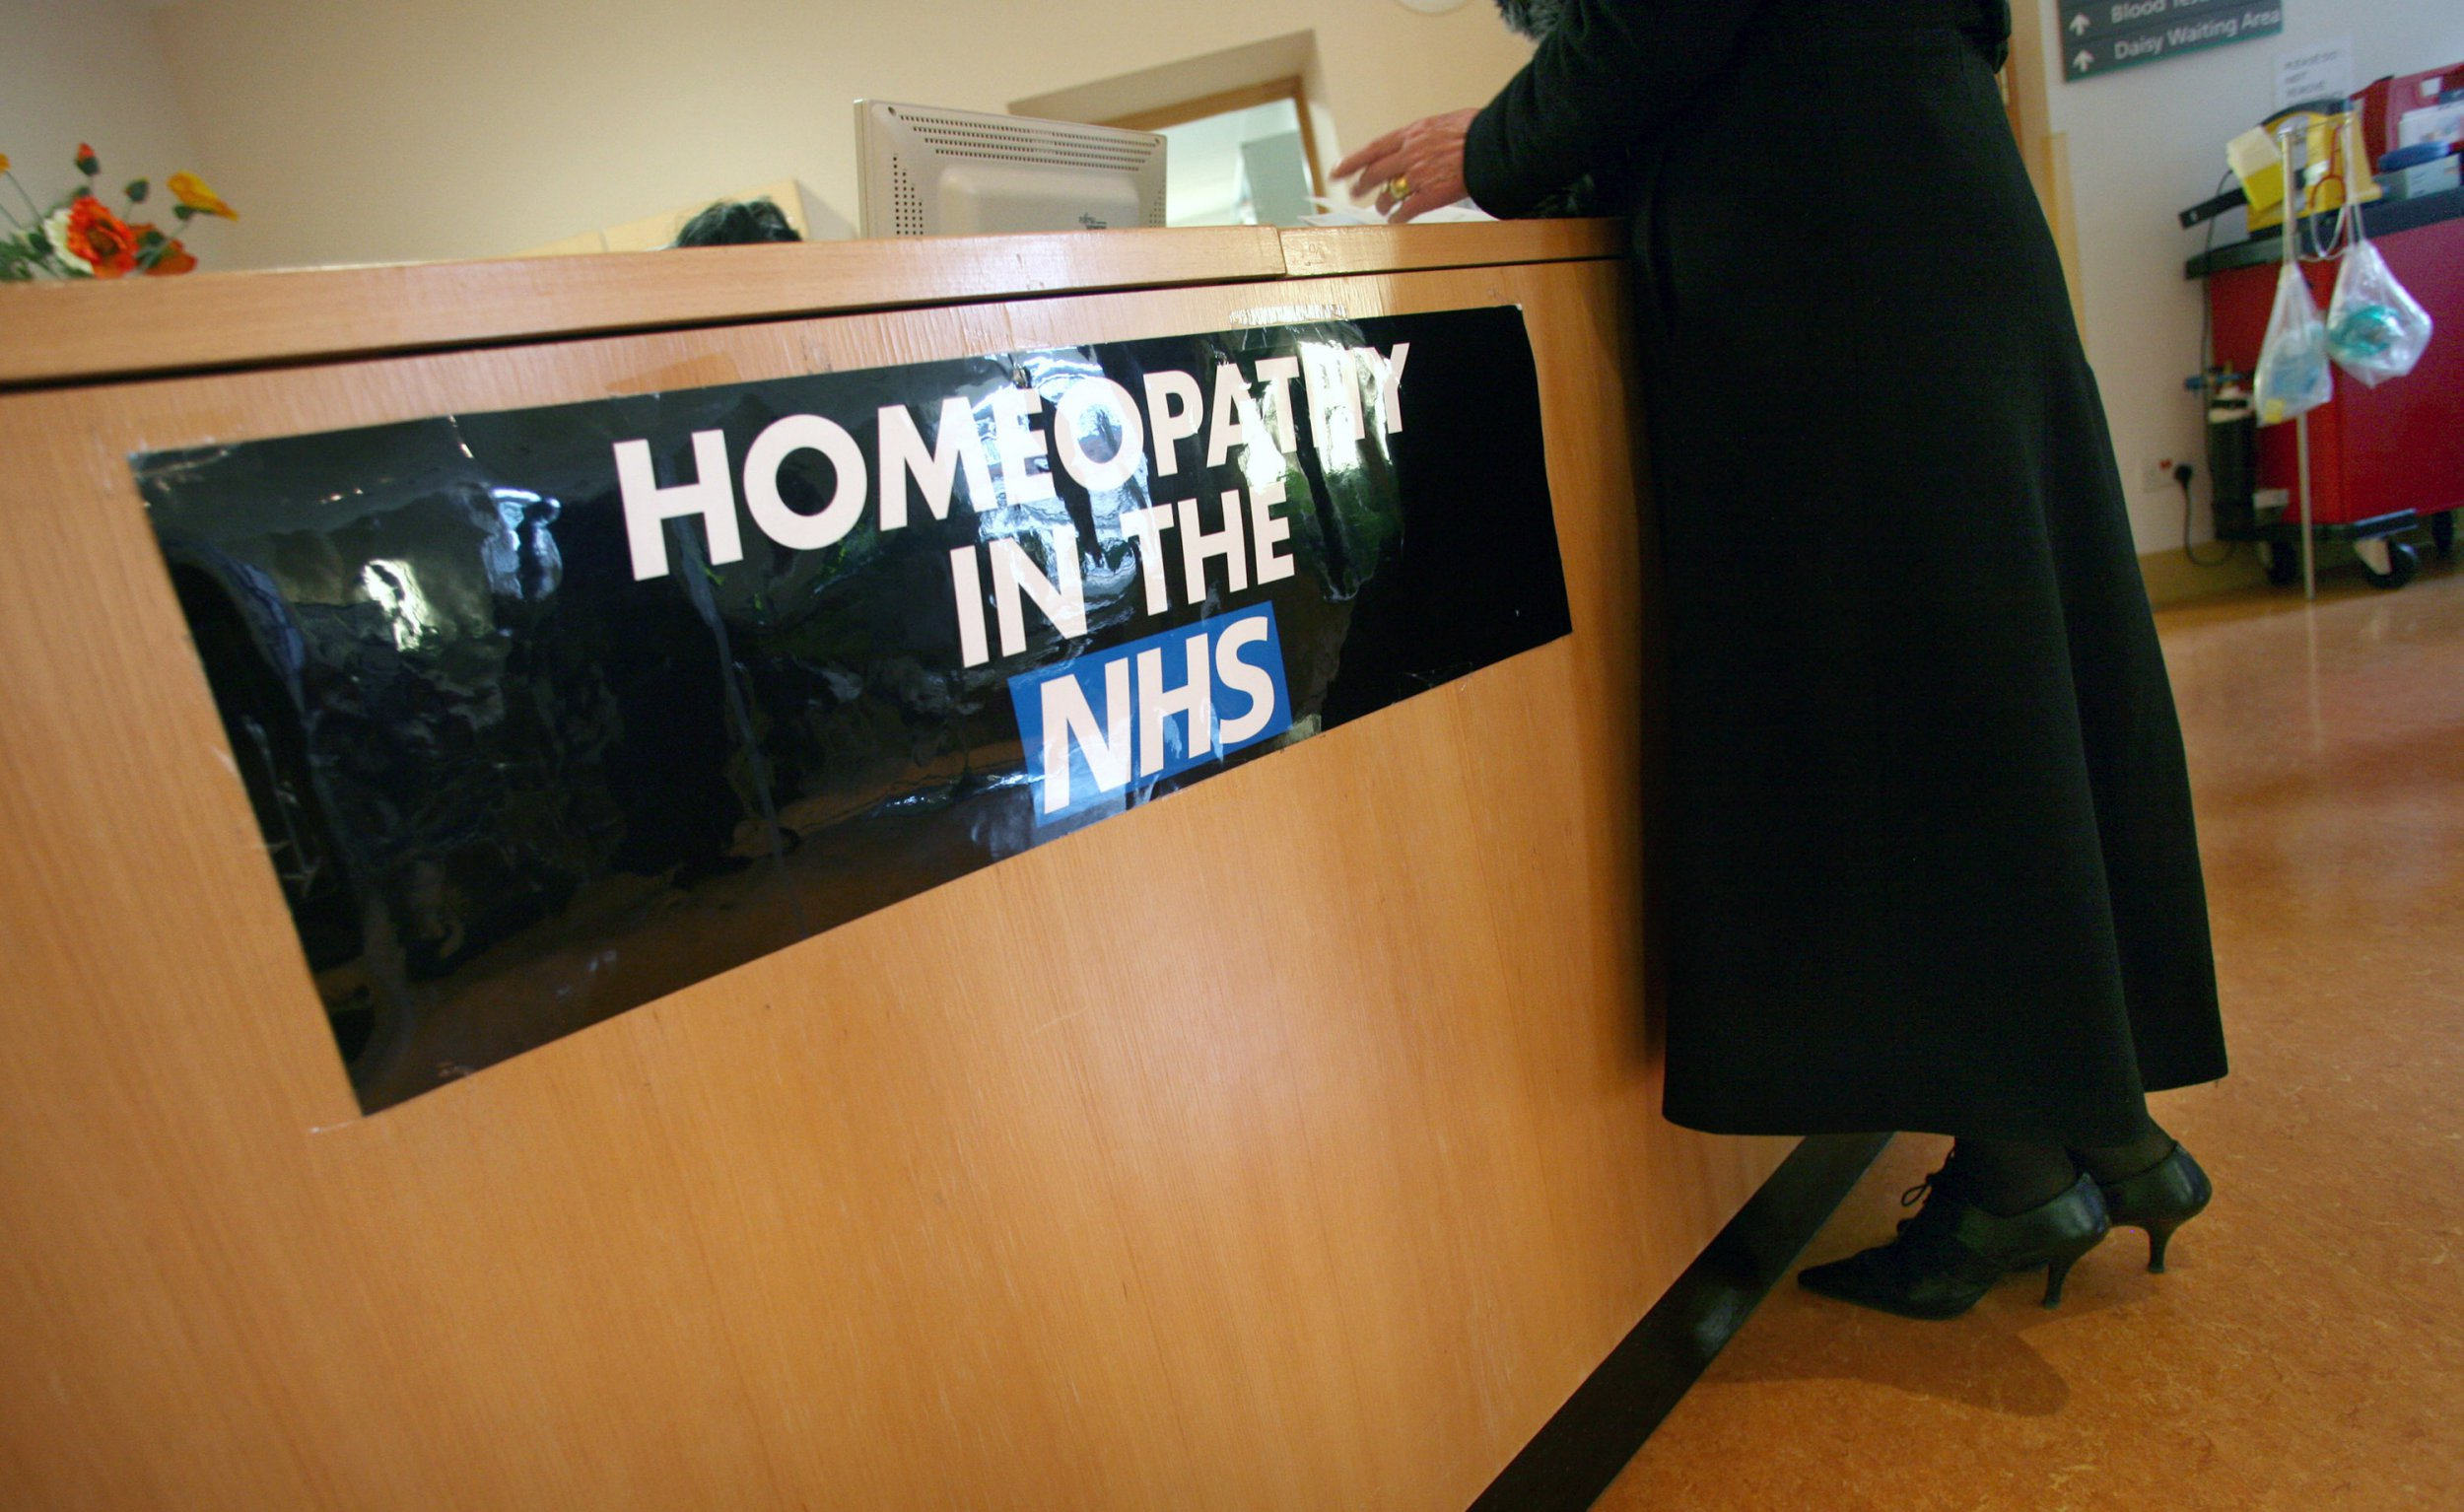 Homeopathy is no longer available on the NHS